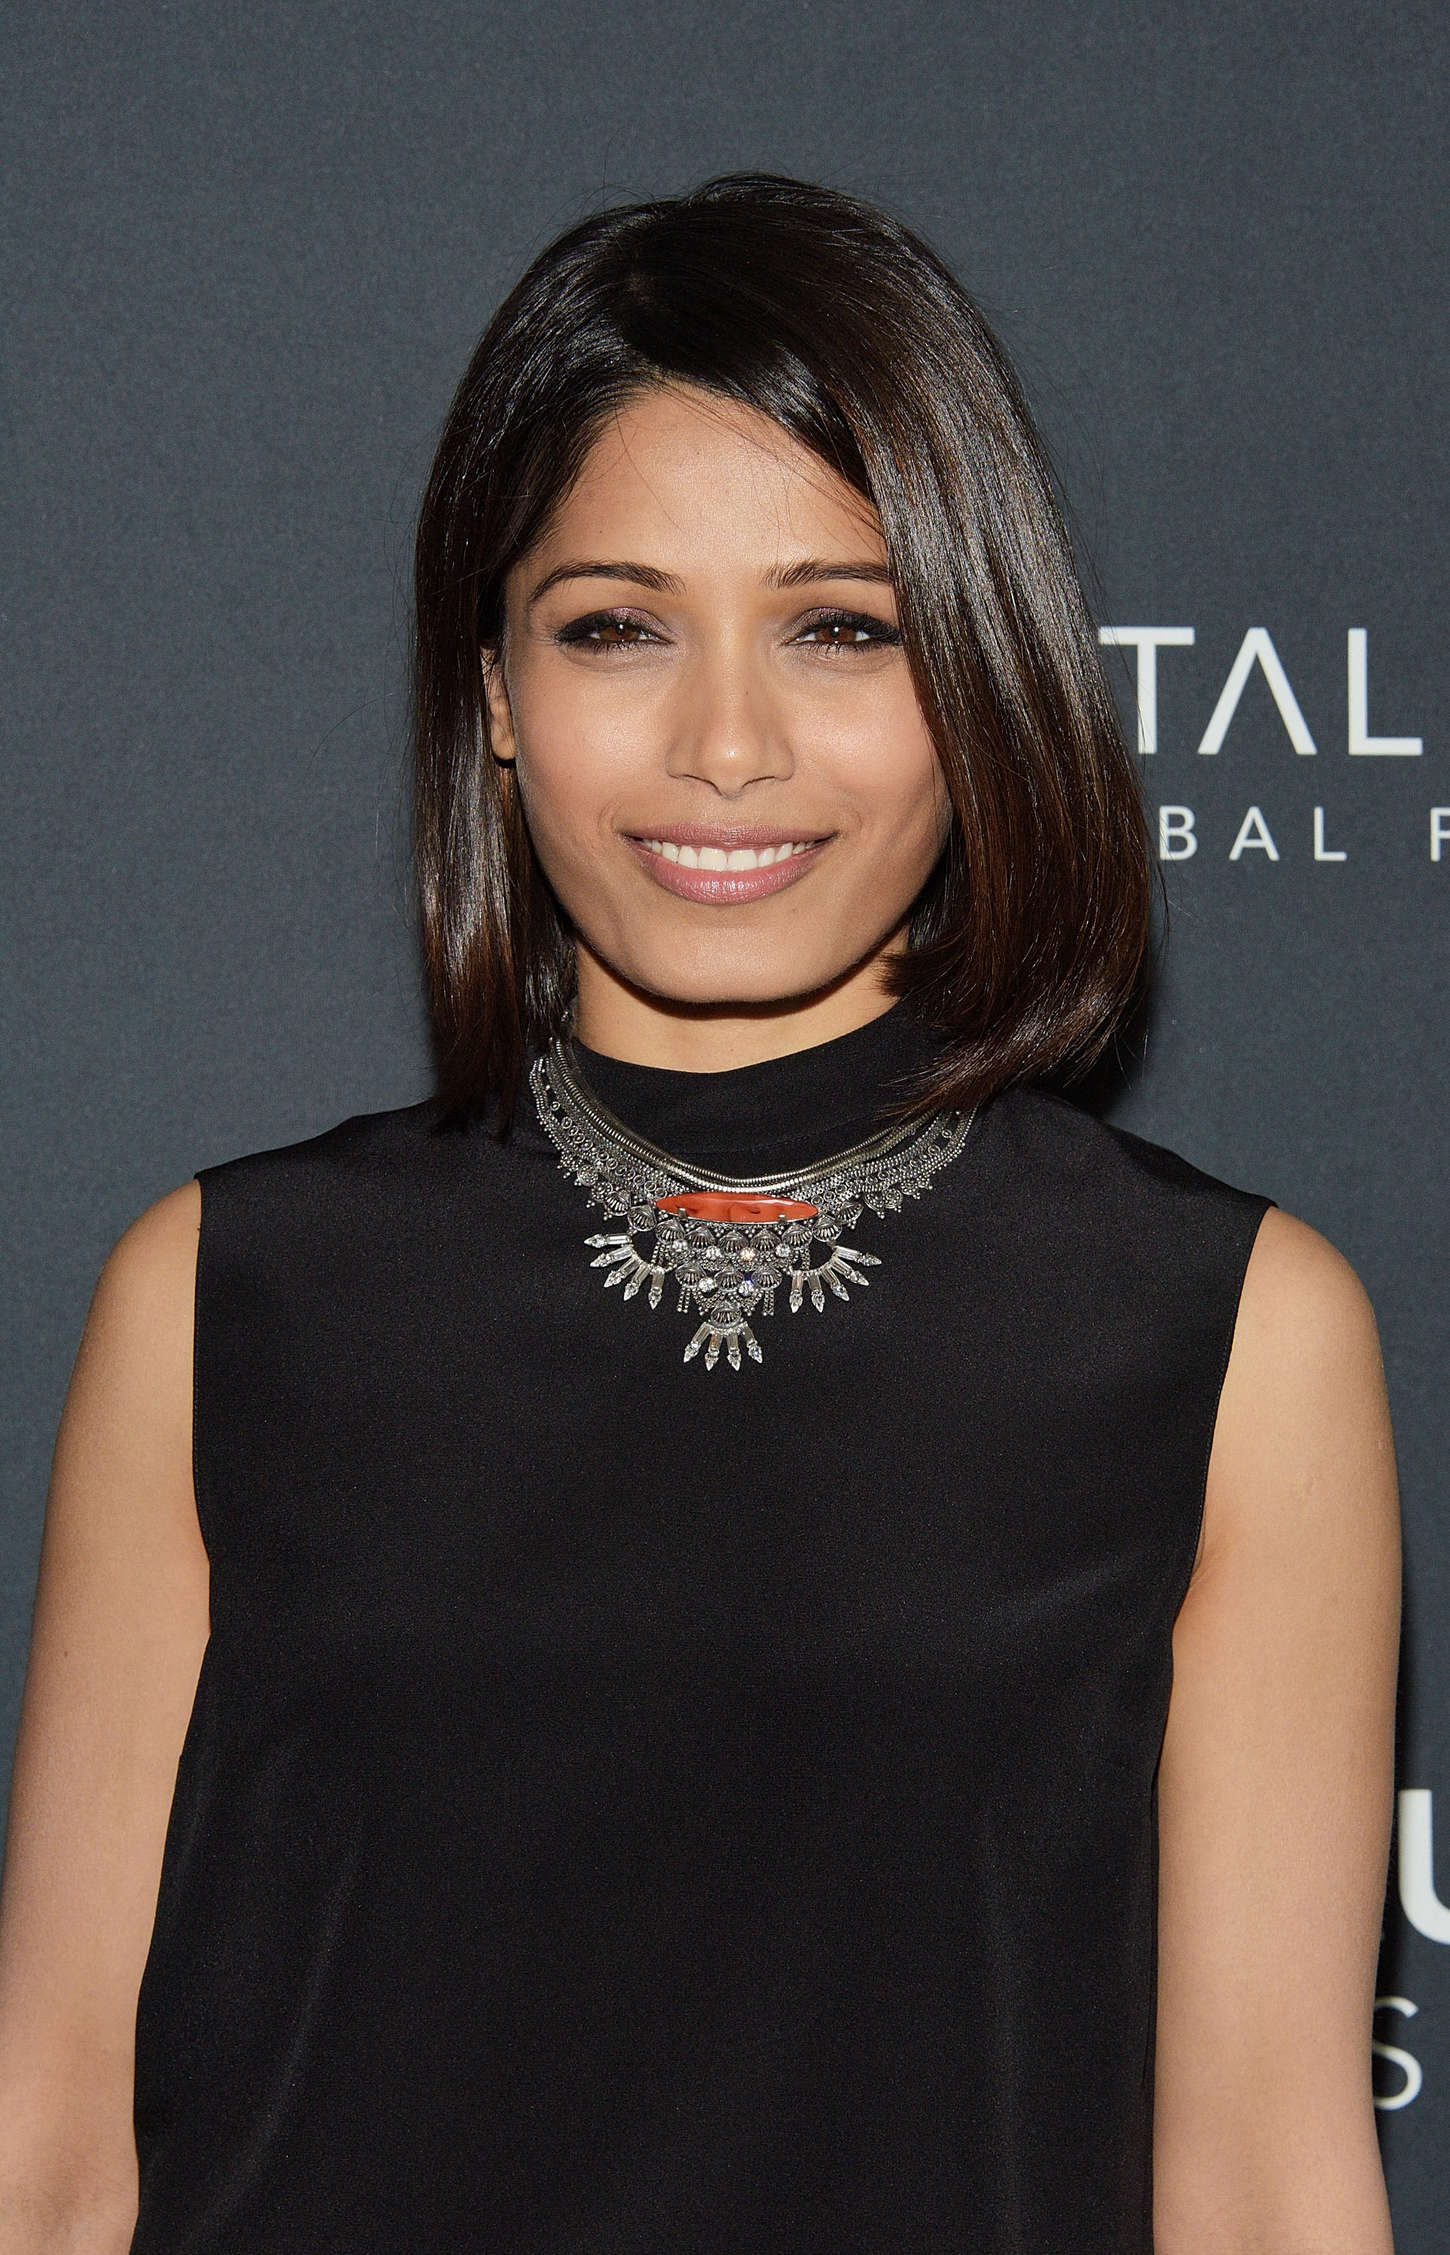 Freida Pinto Indias Daughter Screening in New York